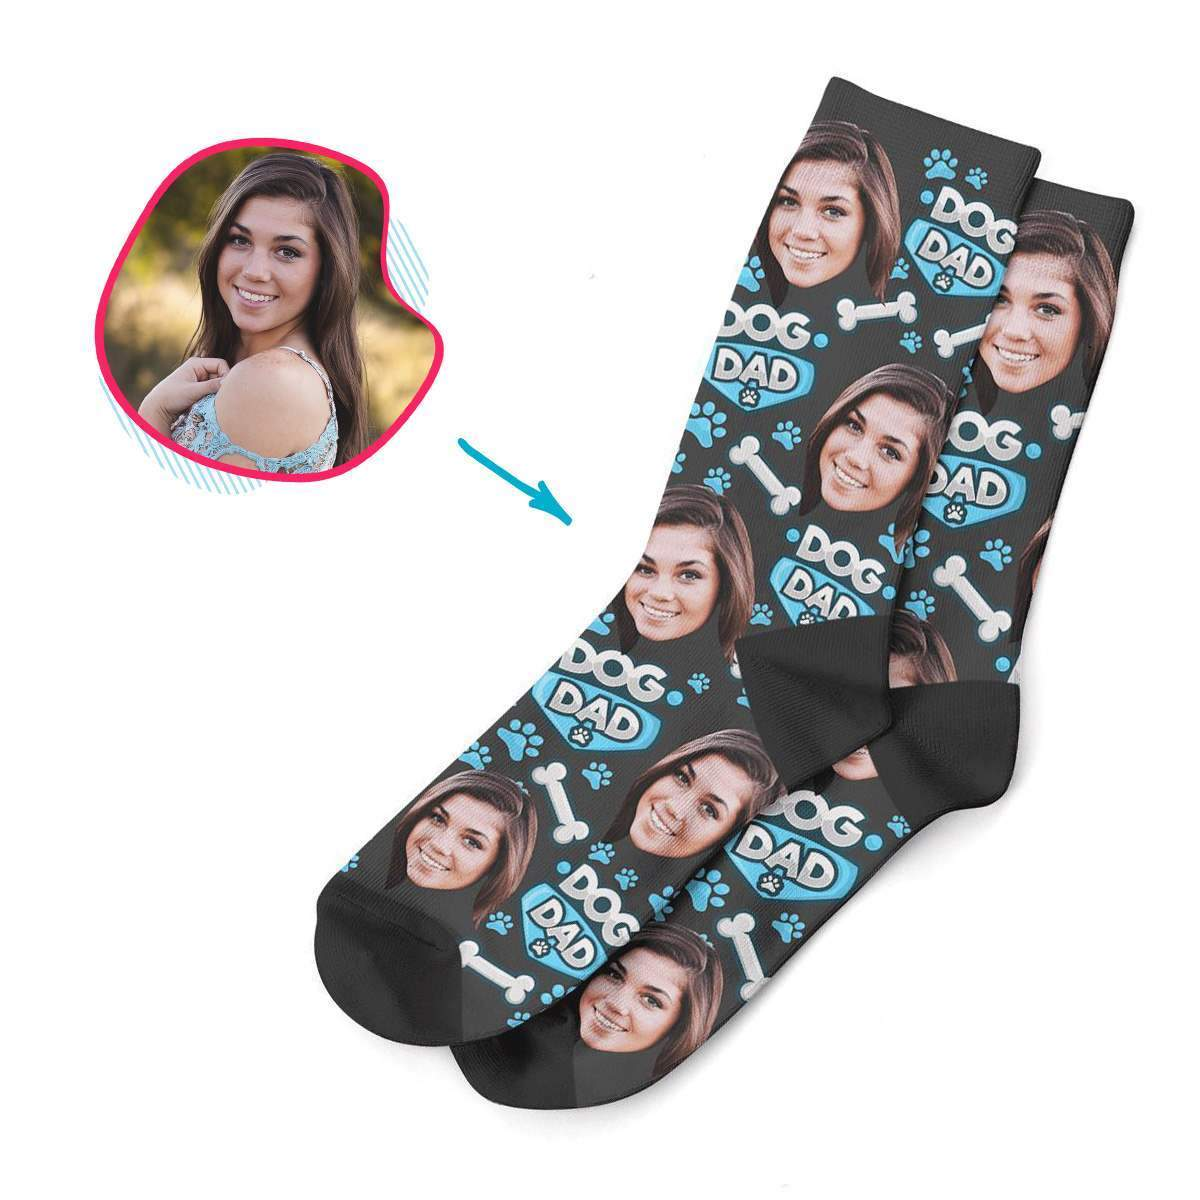 dark Dog Mom socks personalized with photo of face printed on them